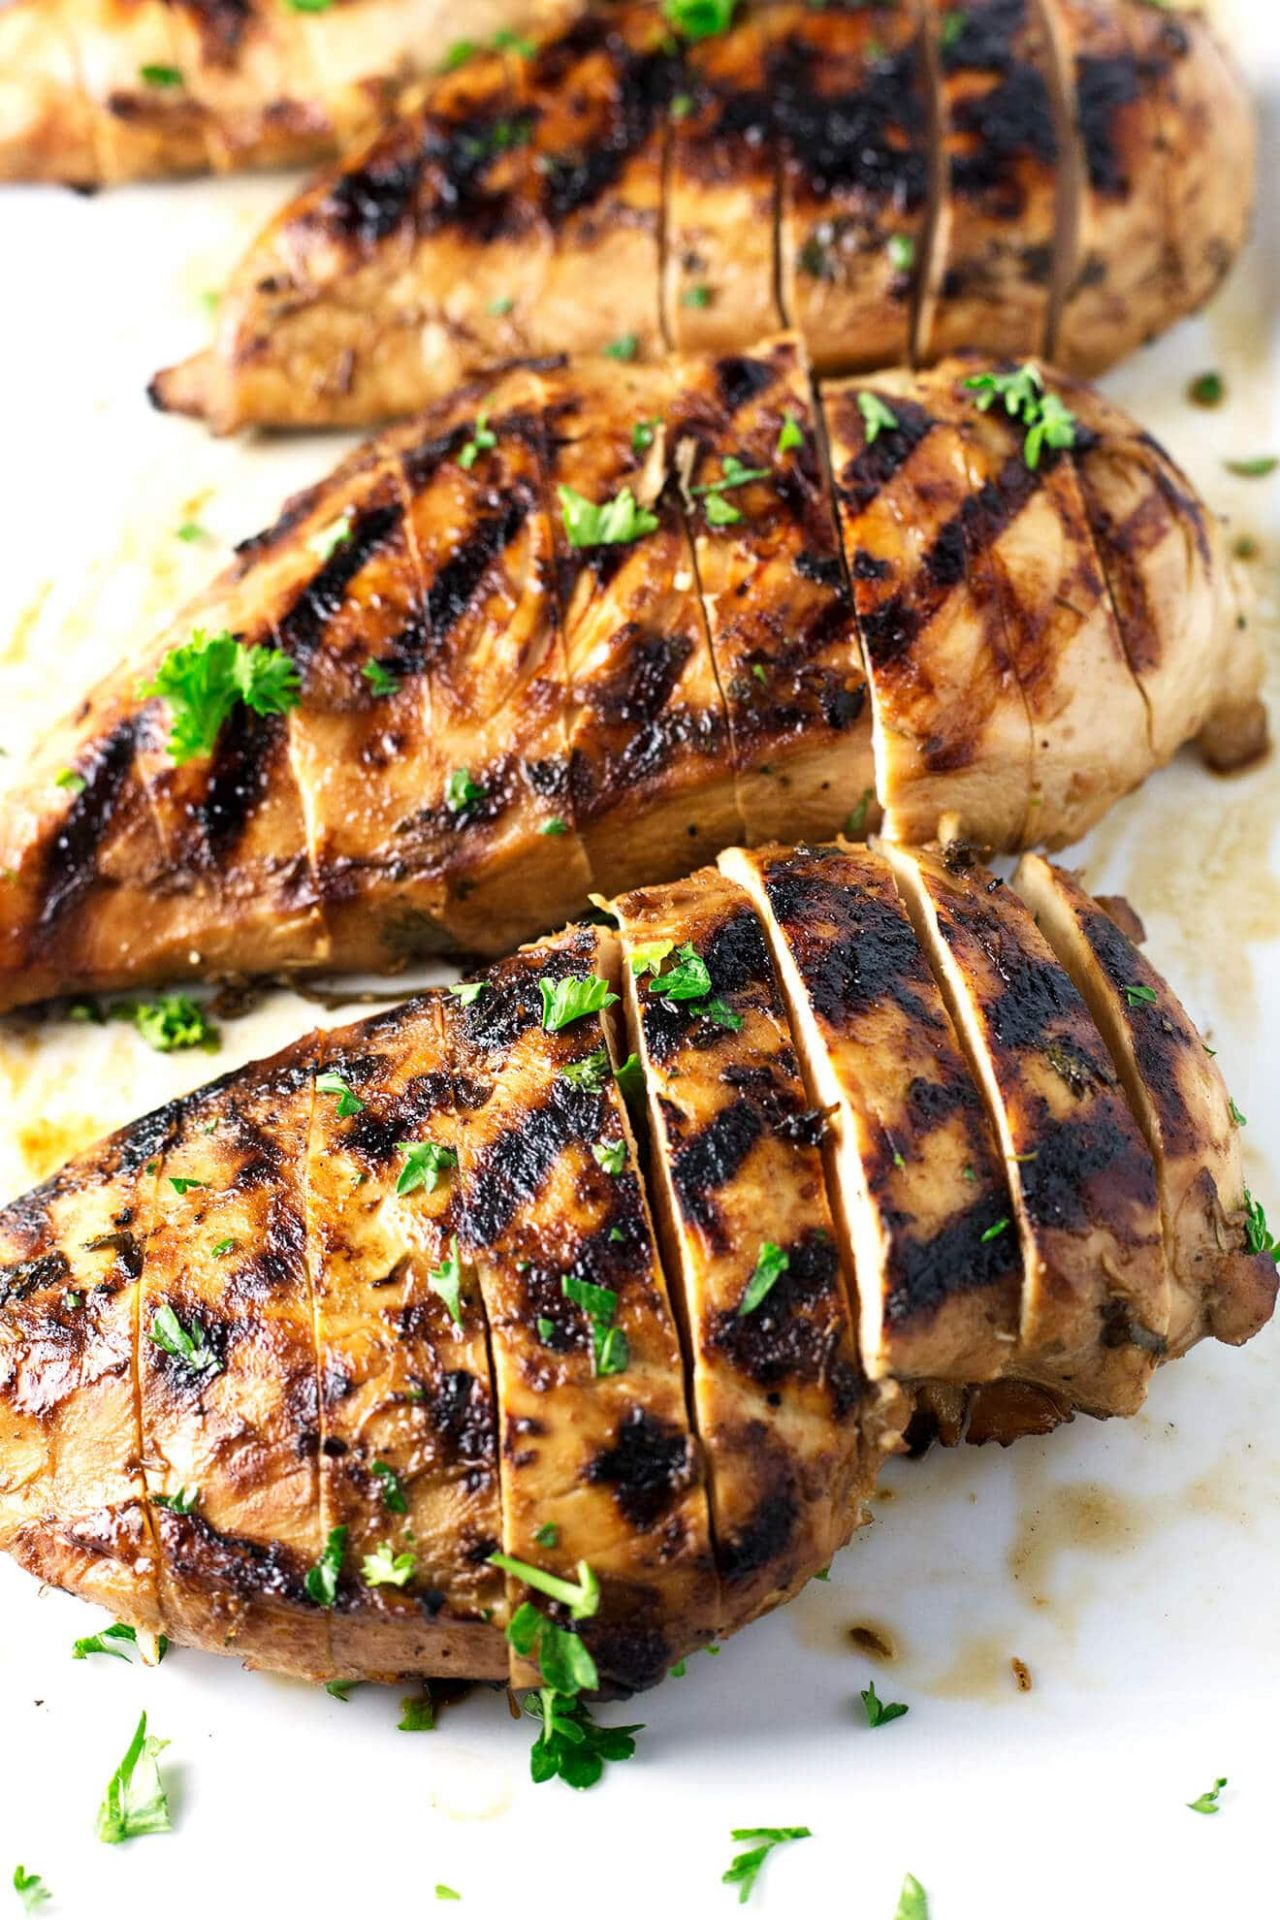 Best & Juiciest Grilled Chicken Breast - Recipe Chicken Breast Grilled